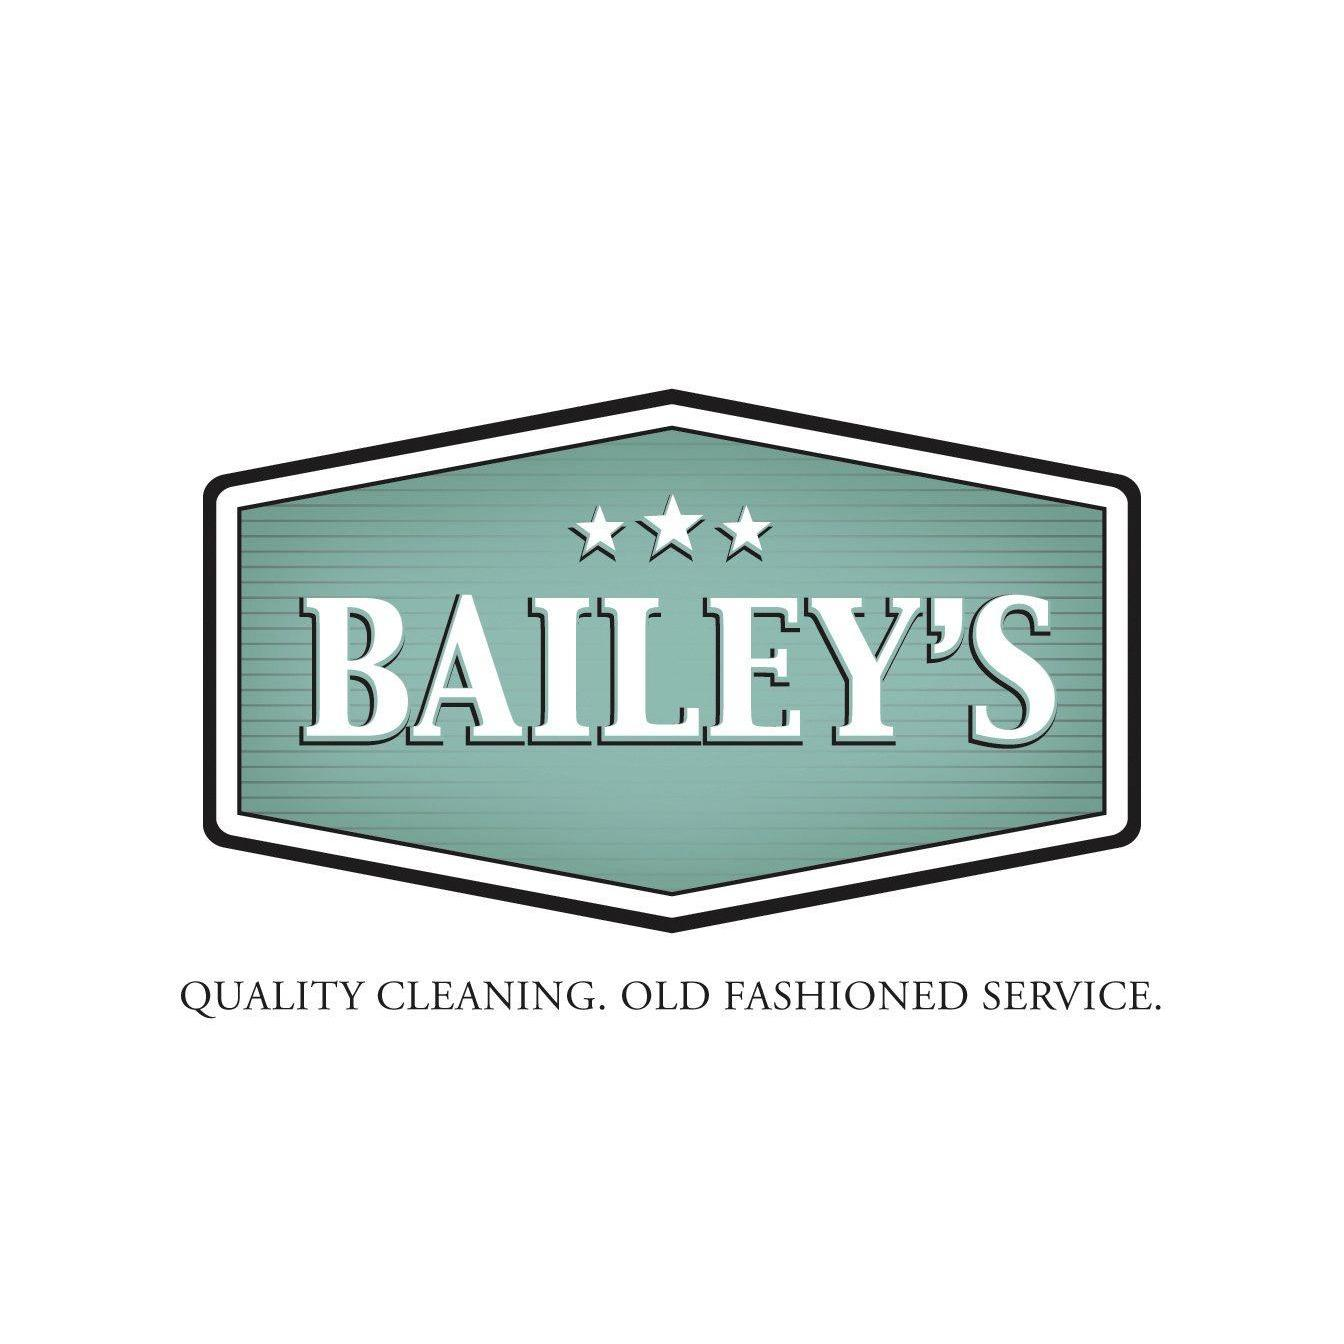 Baileyu2019s Renew-o-vators Cleaning Service - , - Company ...